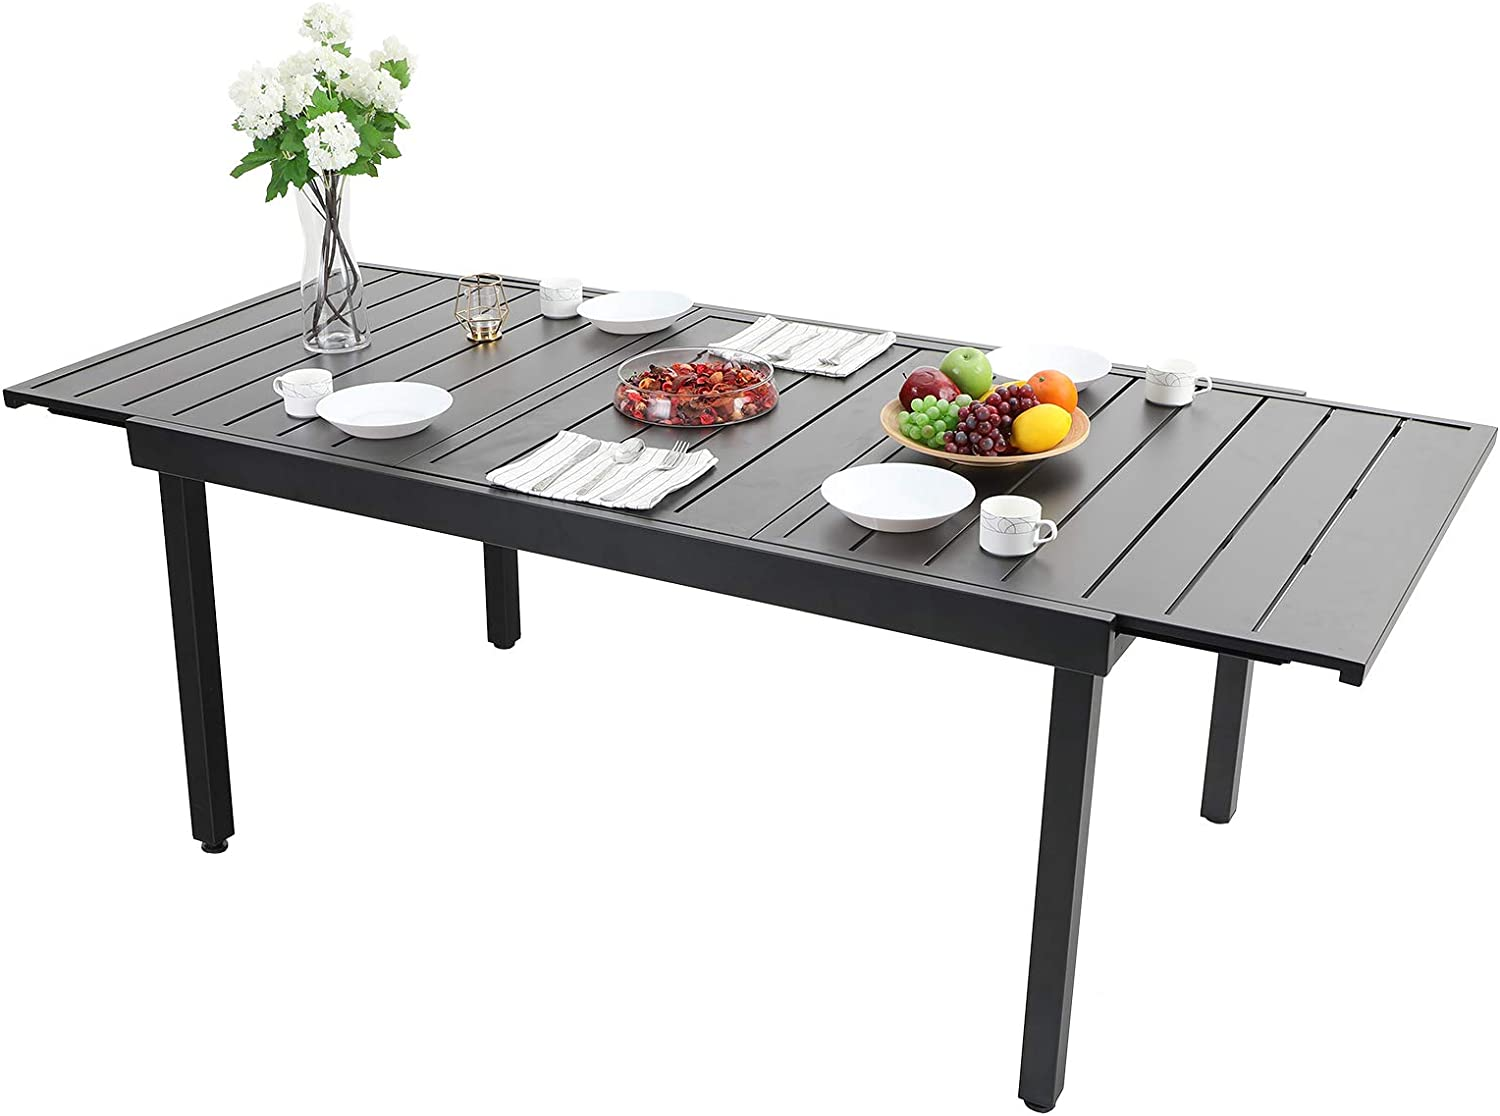 Best for Coating: MFSTUDIOO Outdoor Rectangle Dining Table.